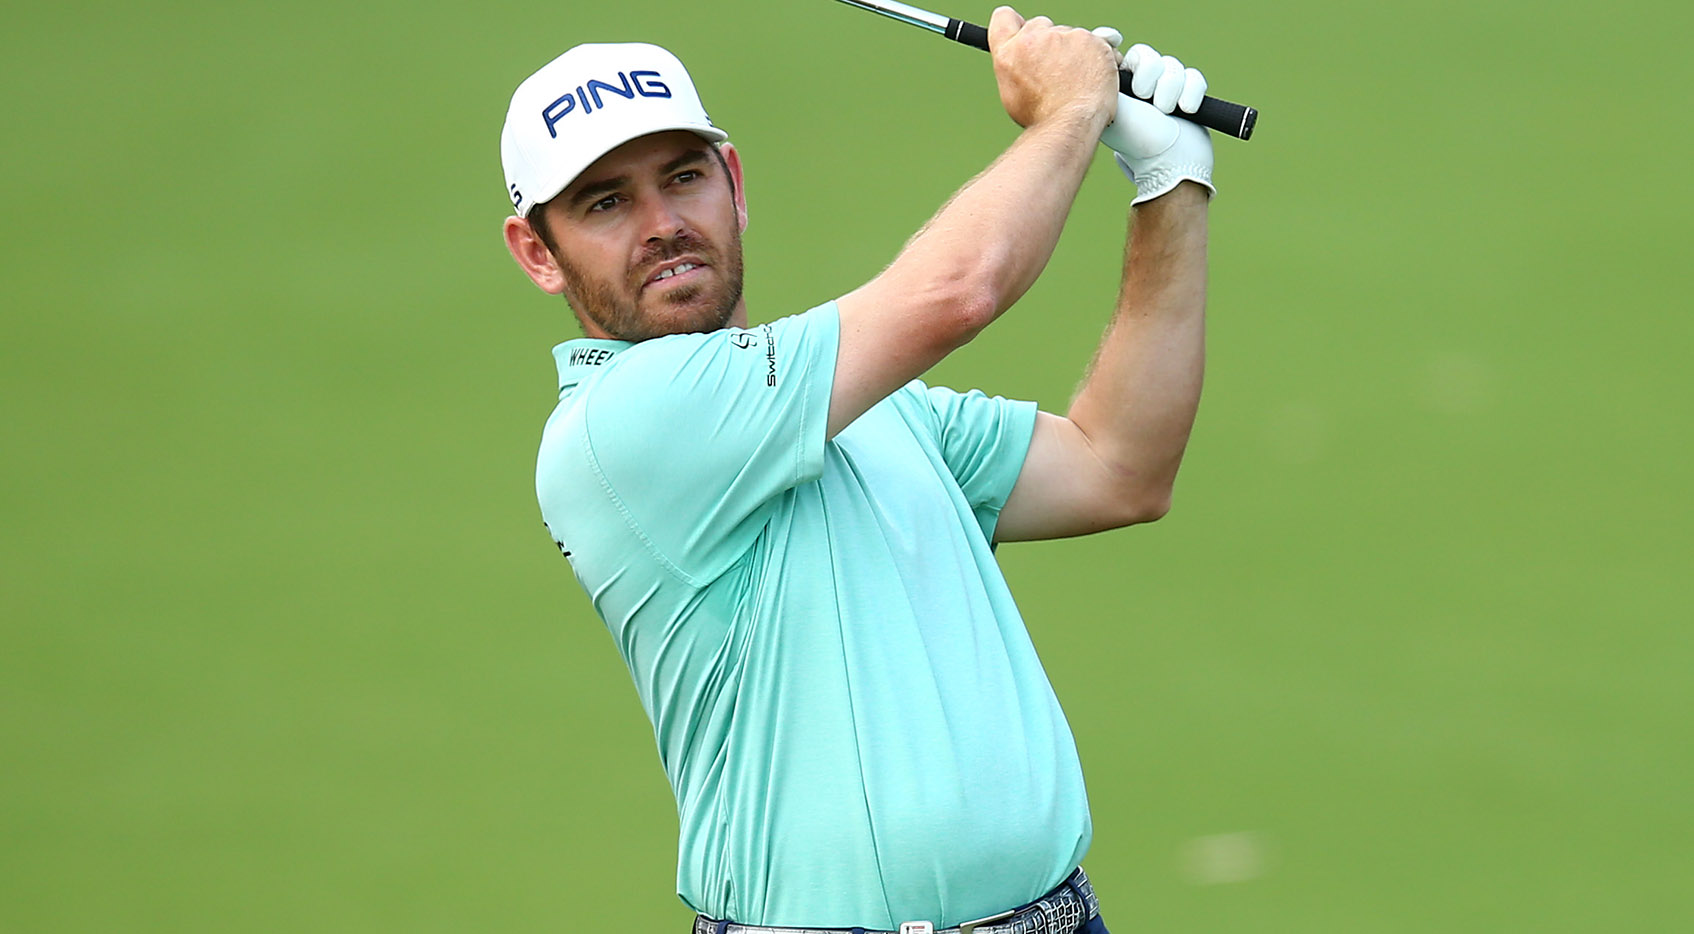 Oosthuizen in good form entering the Presidents Cup